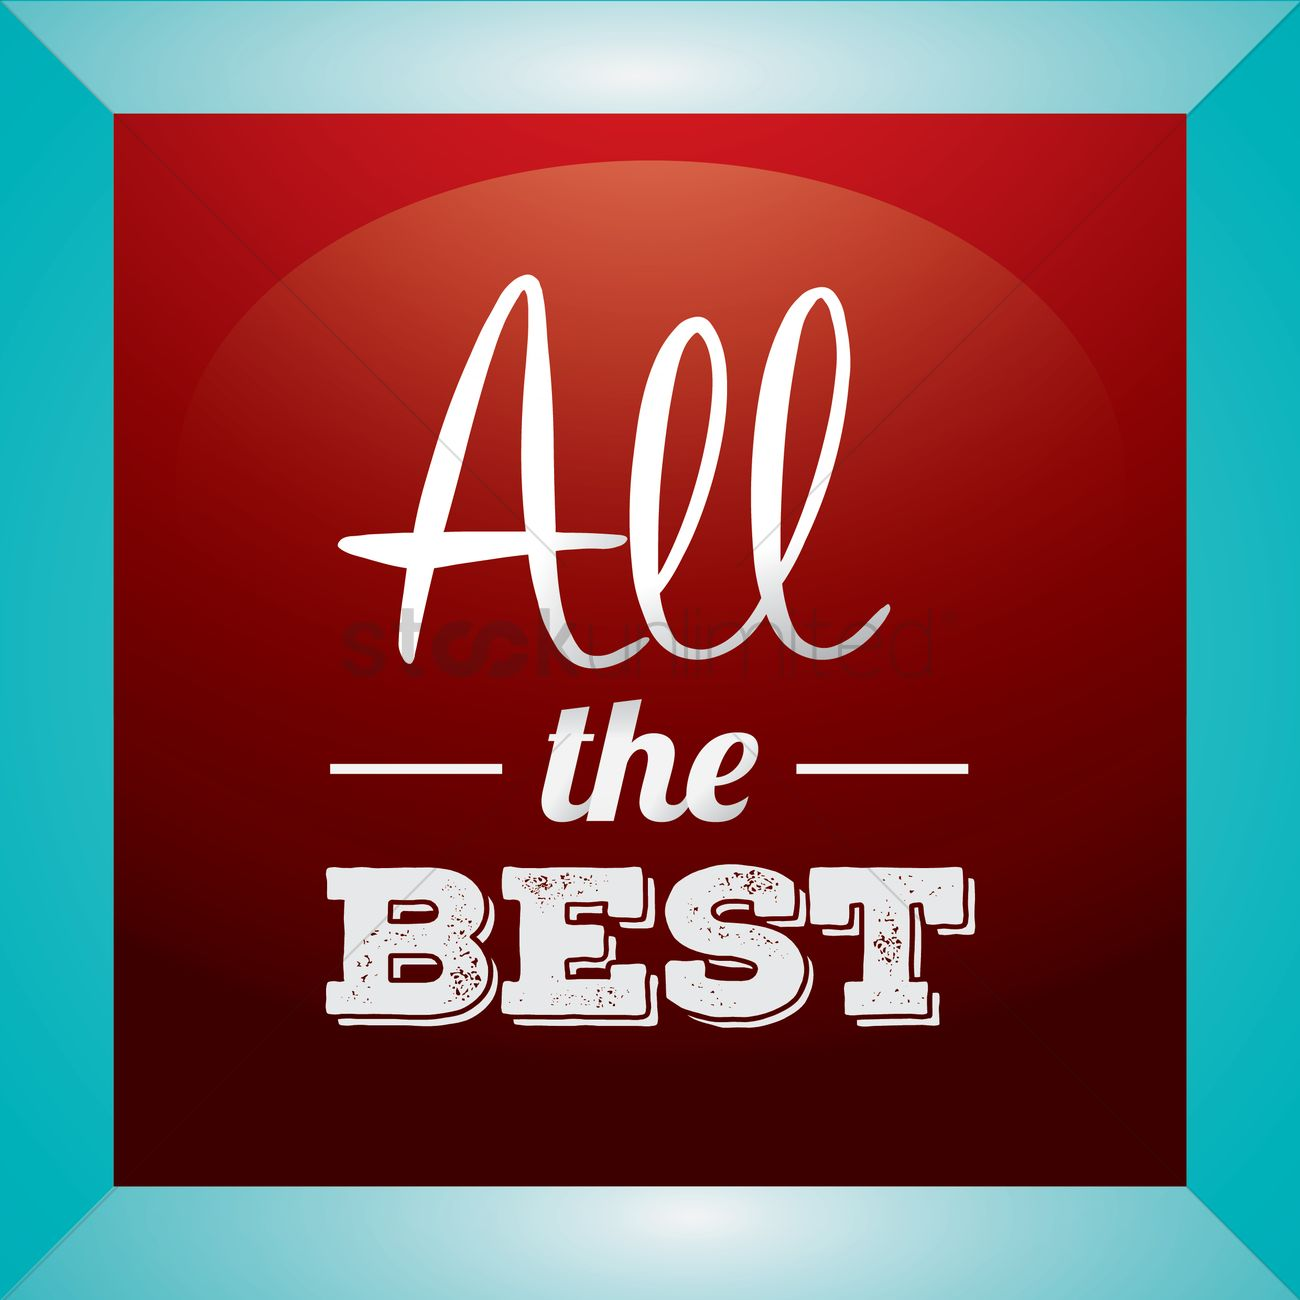 All the best greeting vector image 1811358 stockunlimited all the best greeting vector graphic kristyandbryce Image collections